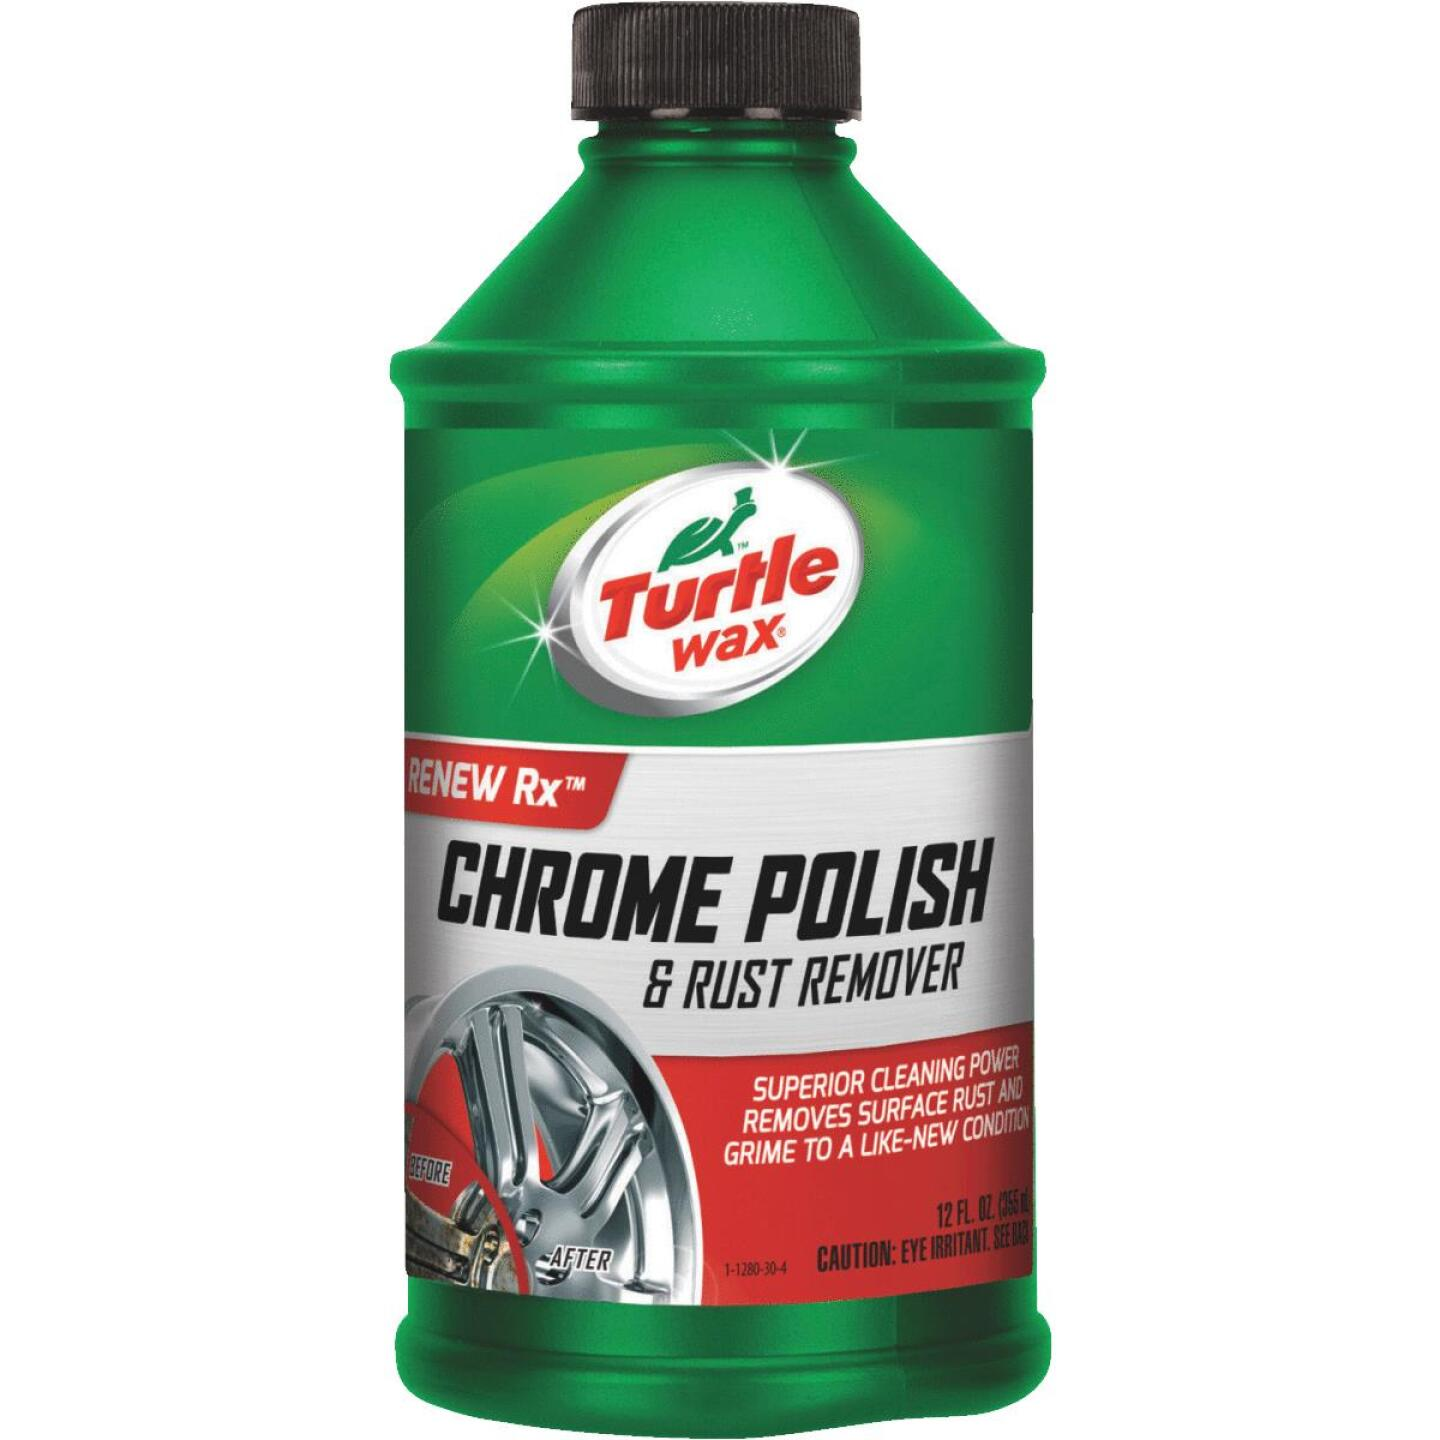 Turtle Wax RENEW Rx Liquid 12 oz Chrome Polish Image 1